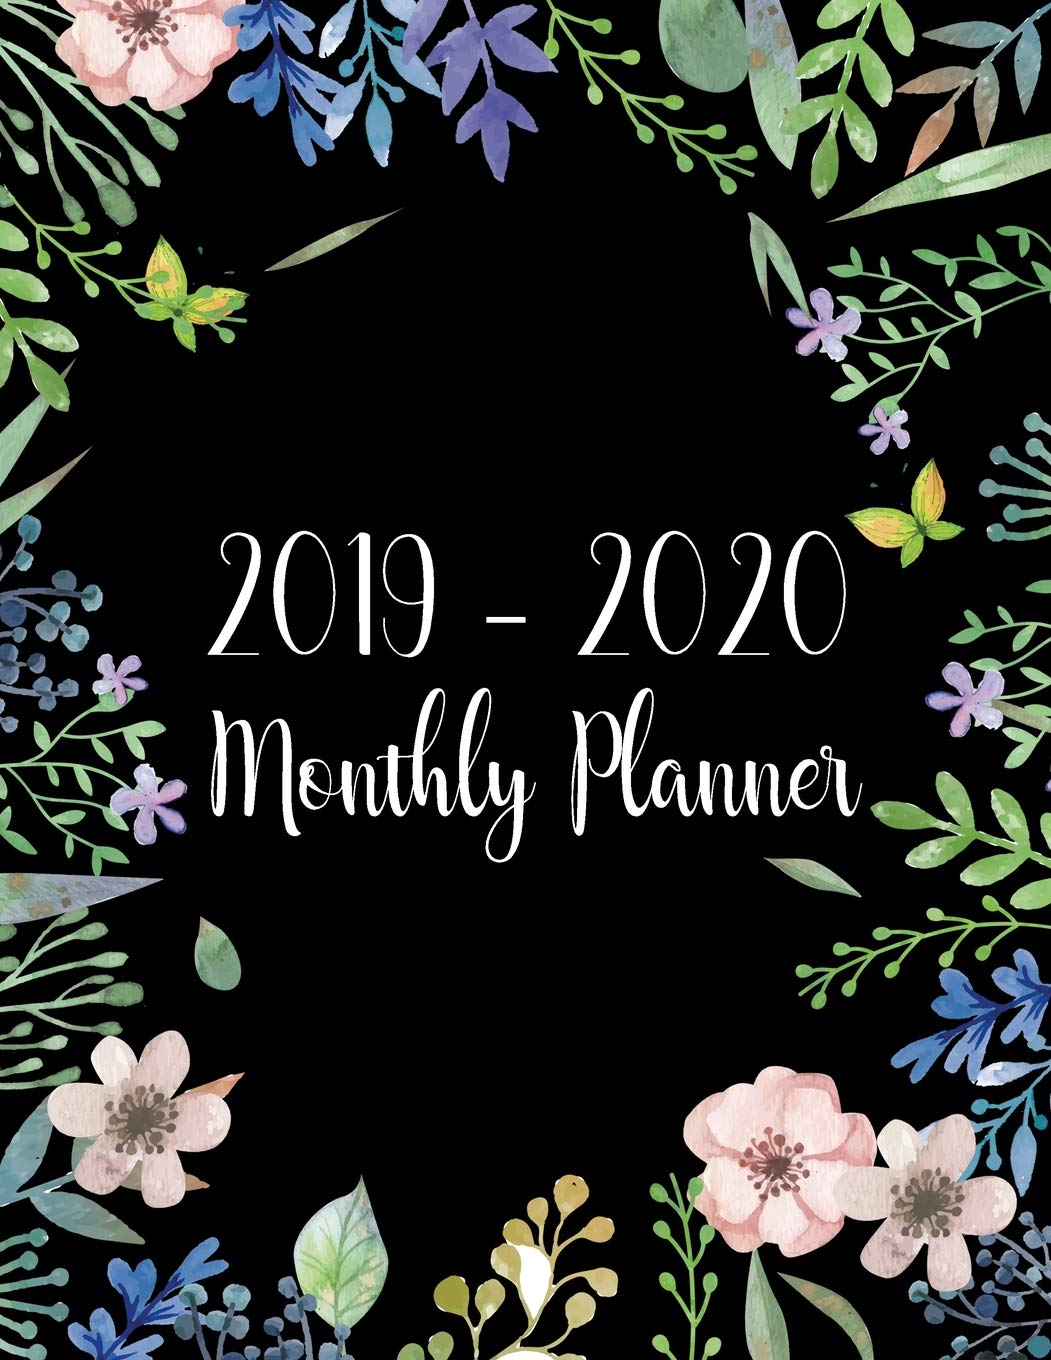 Wmu Academic Calendar 2020 2019 2020 Monthly Planner: Two Year   Monthly Calendar Planner